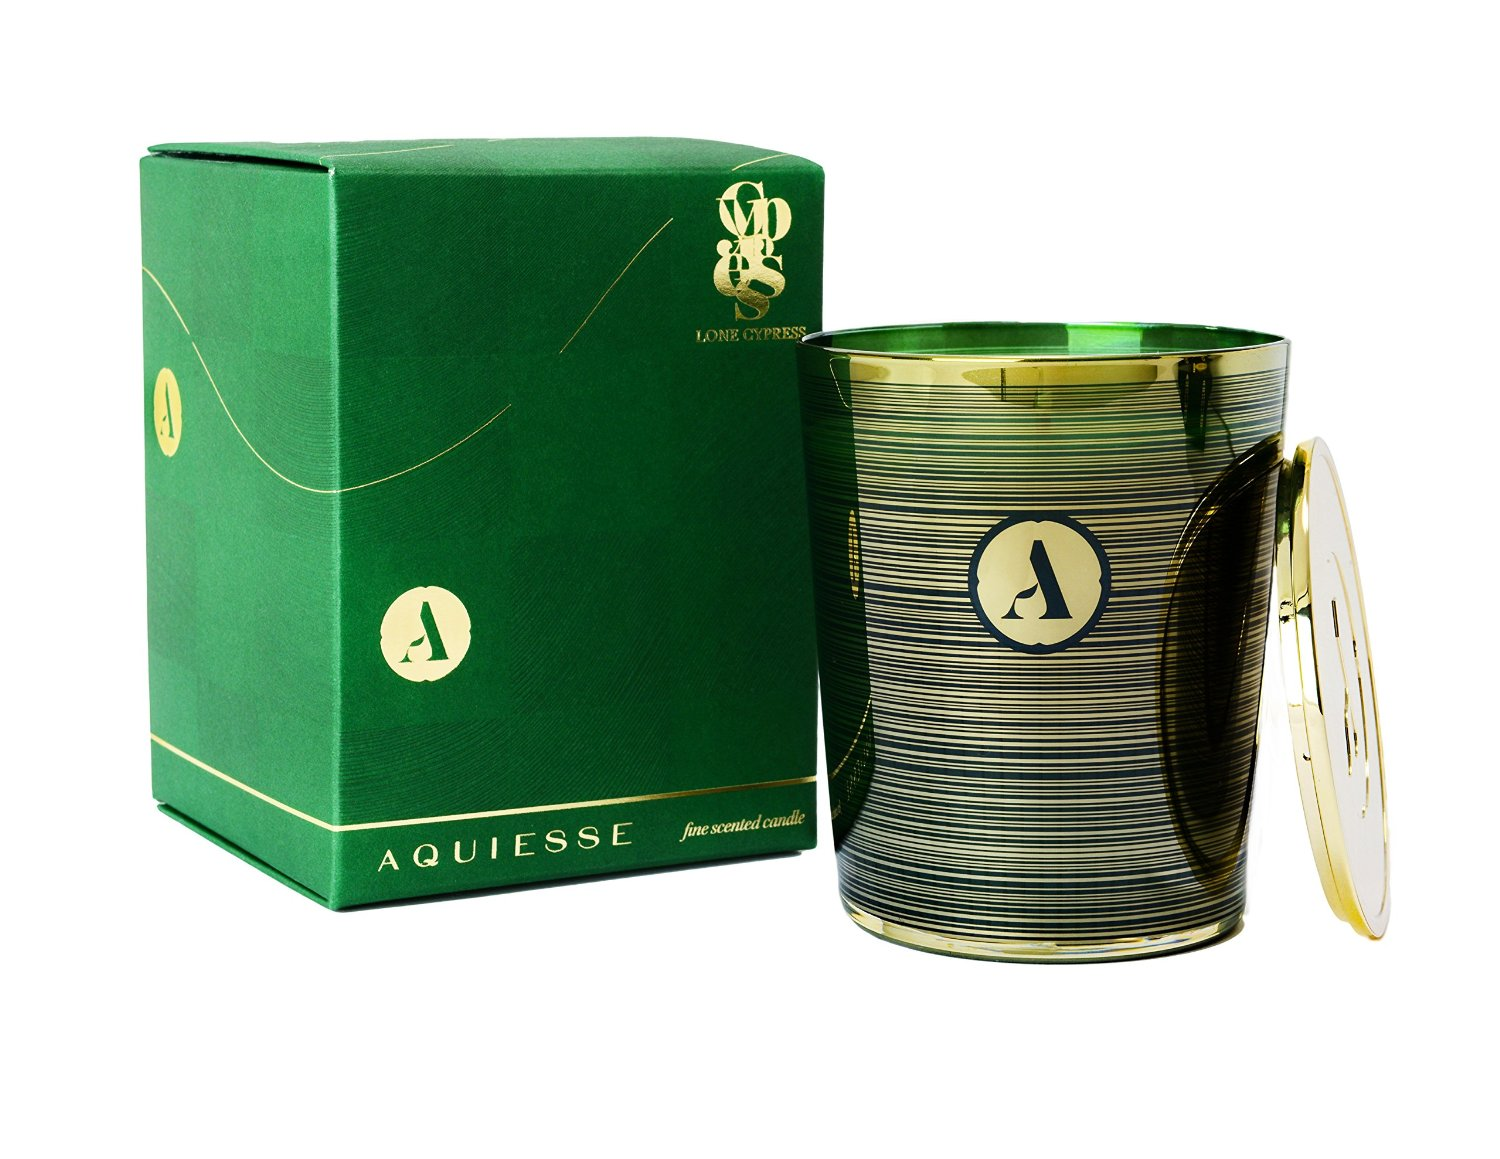 Aquiesse Holiday Lone Cypress Soy Candle Luxury Candles